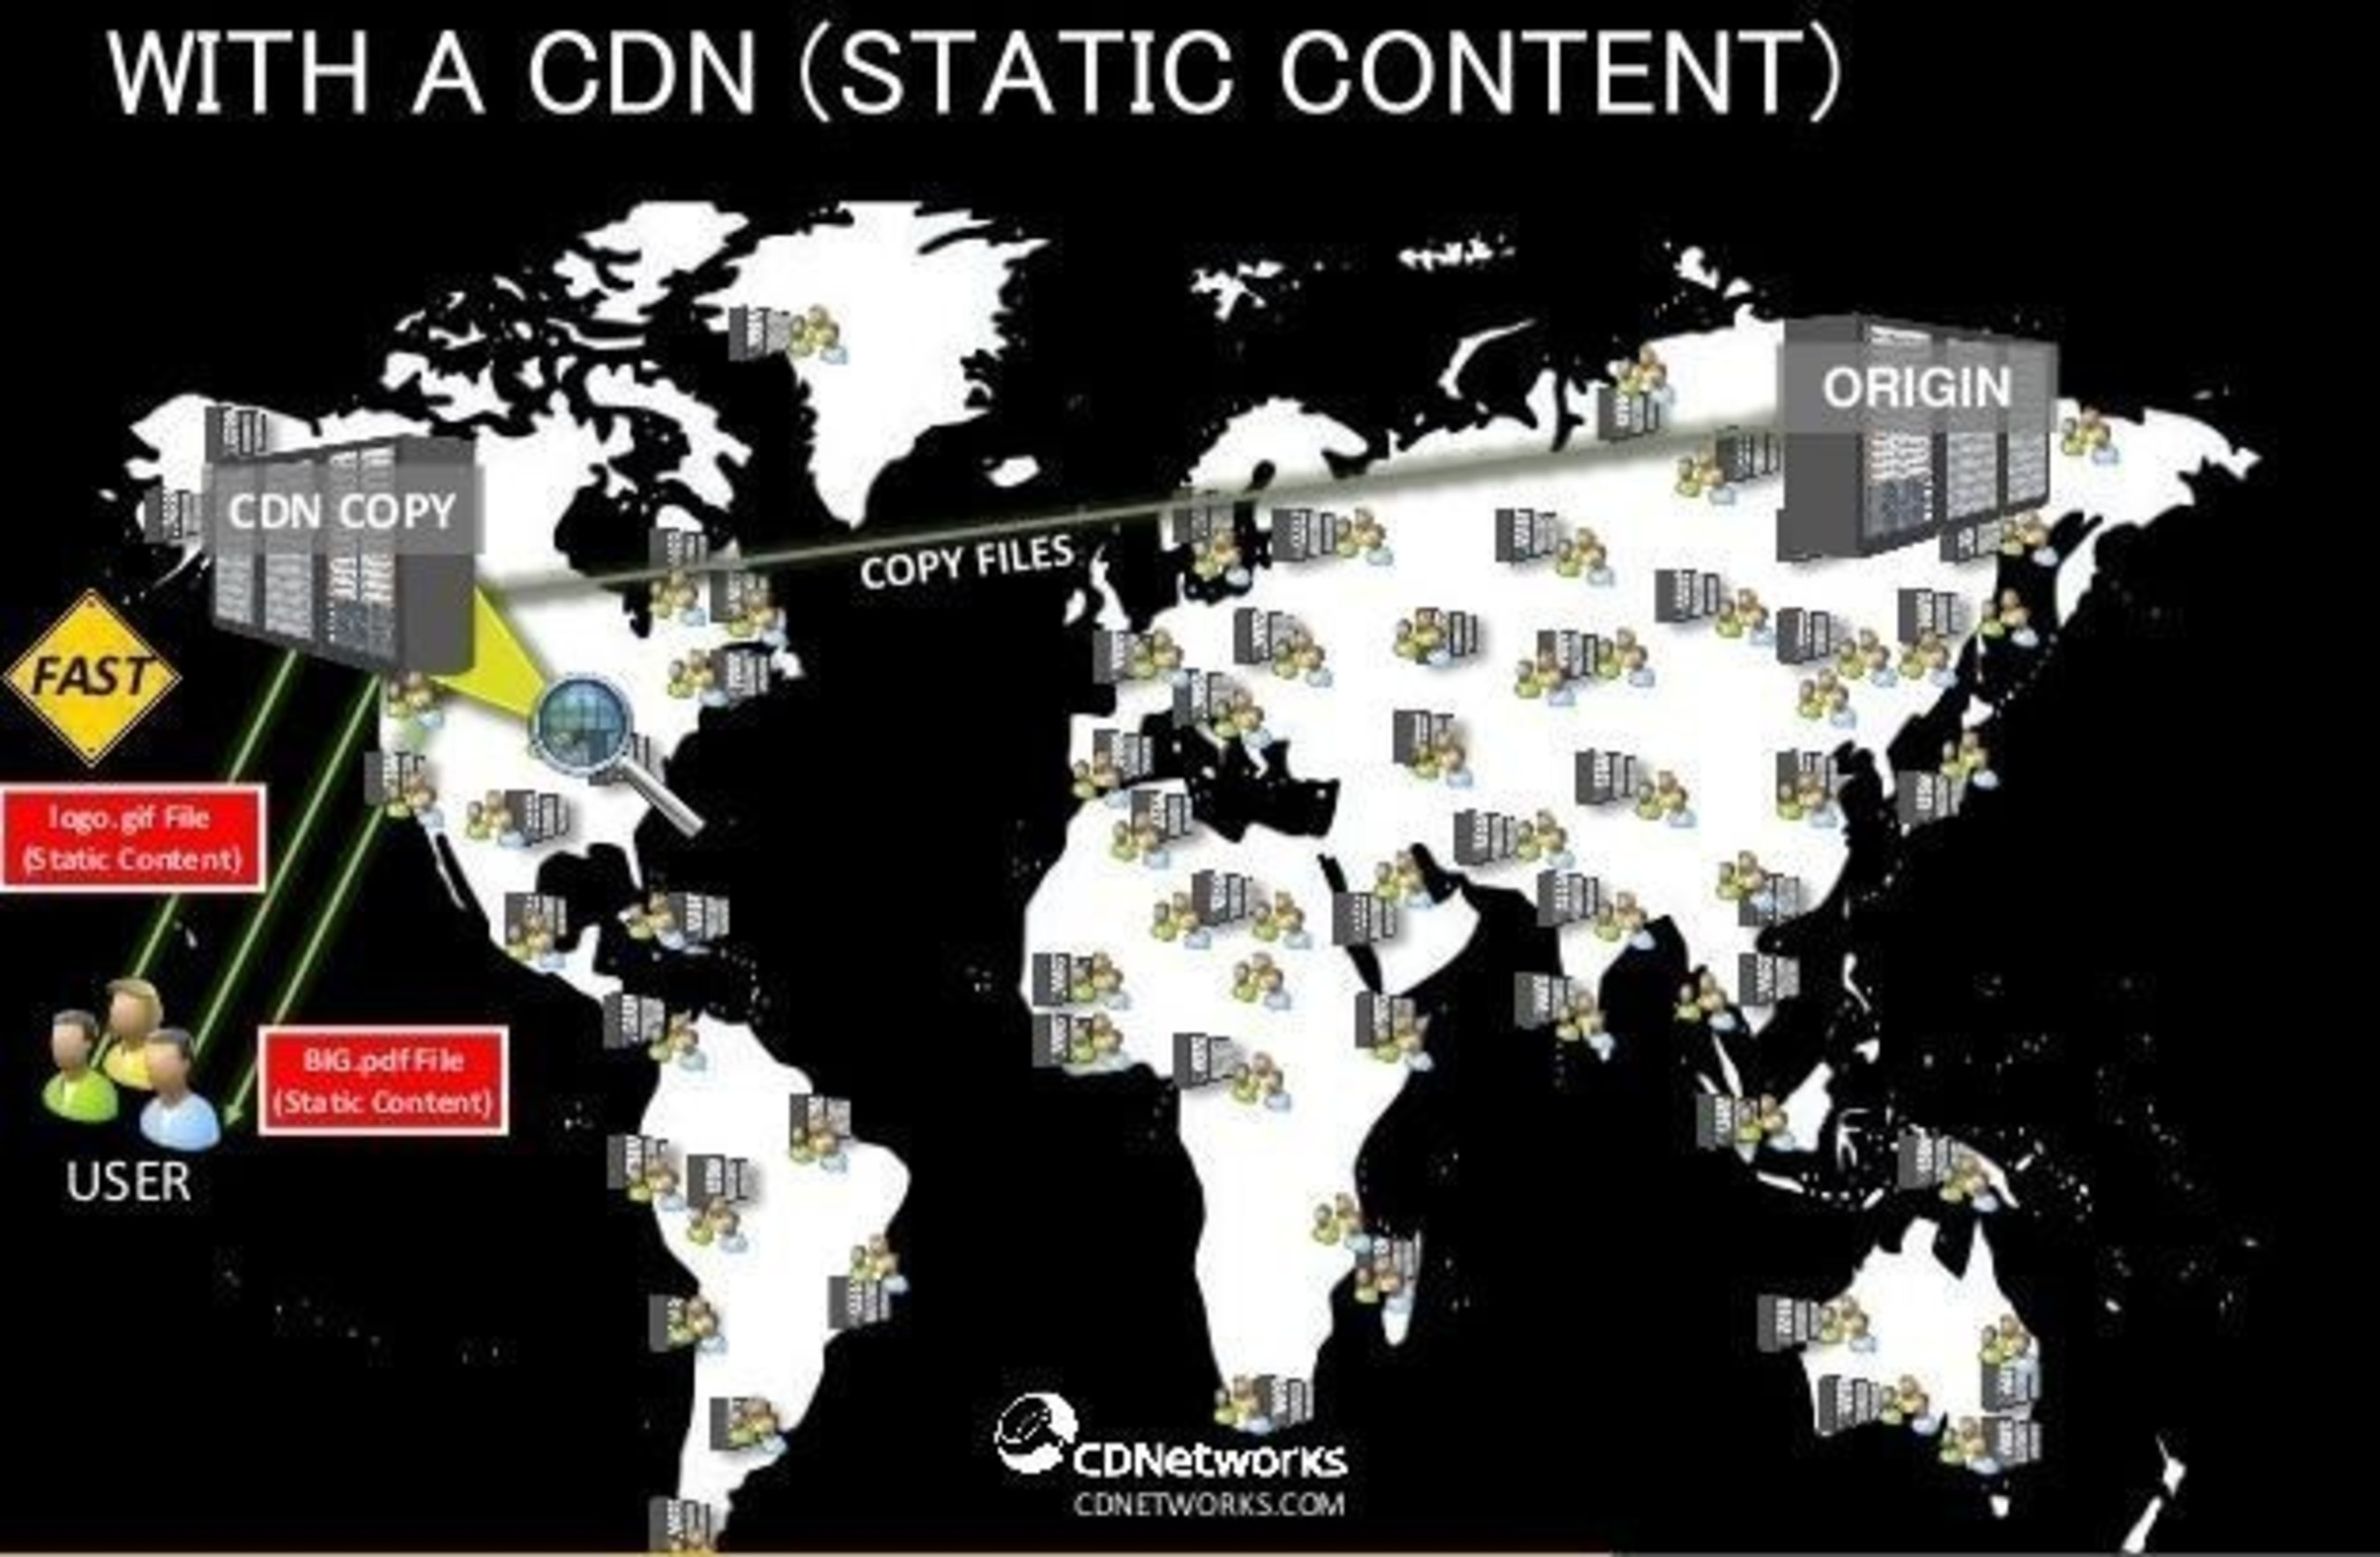 With a CDN Static Content